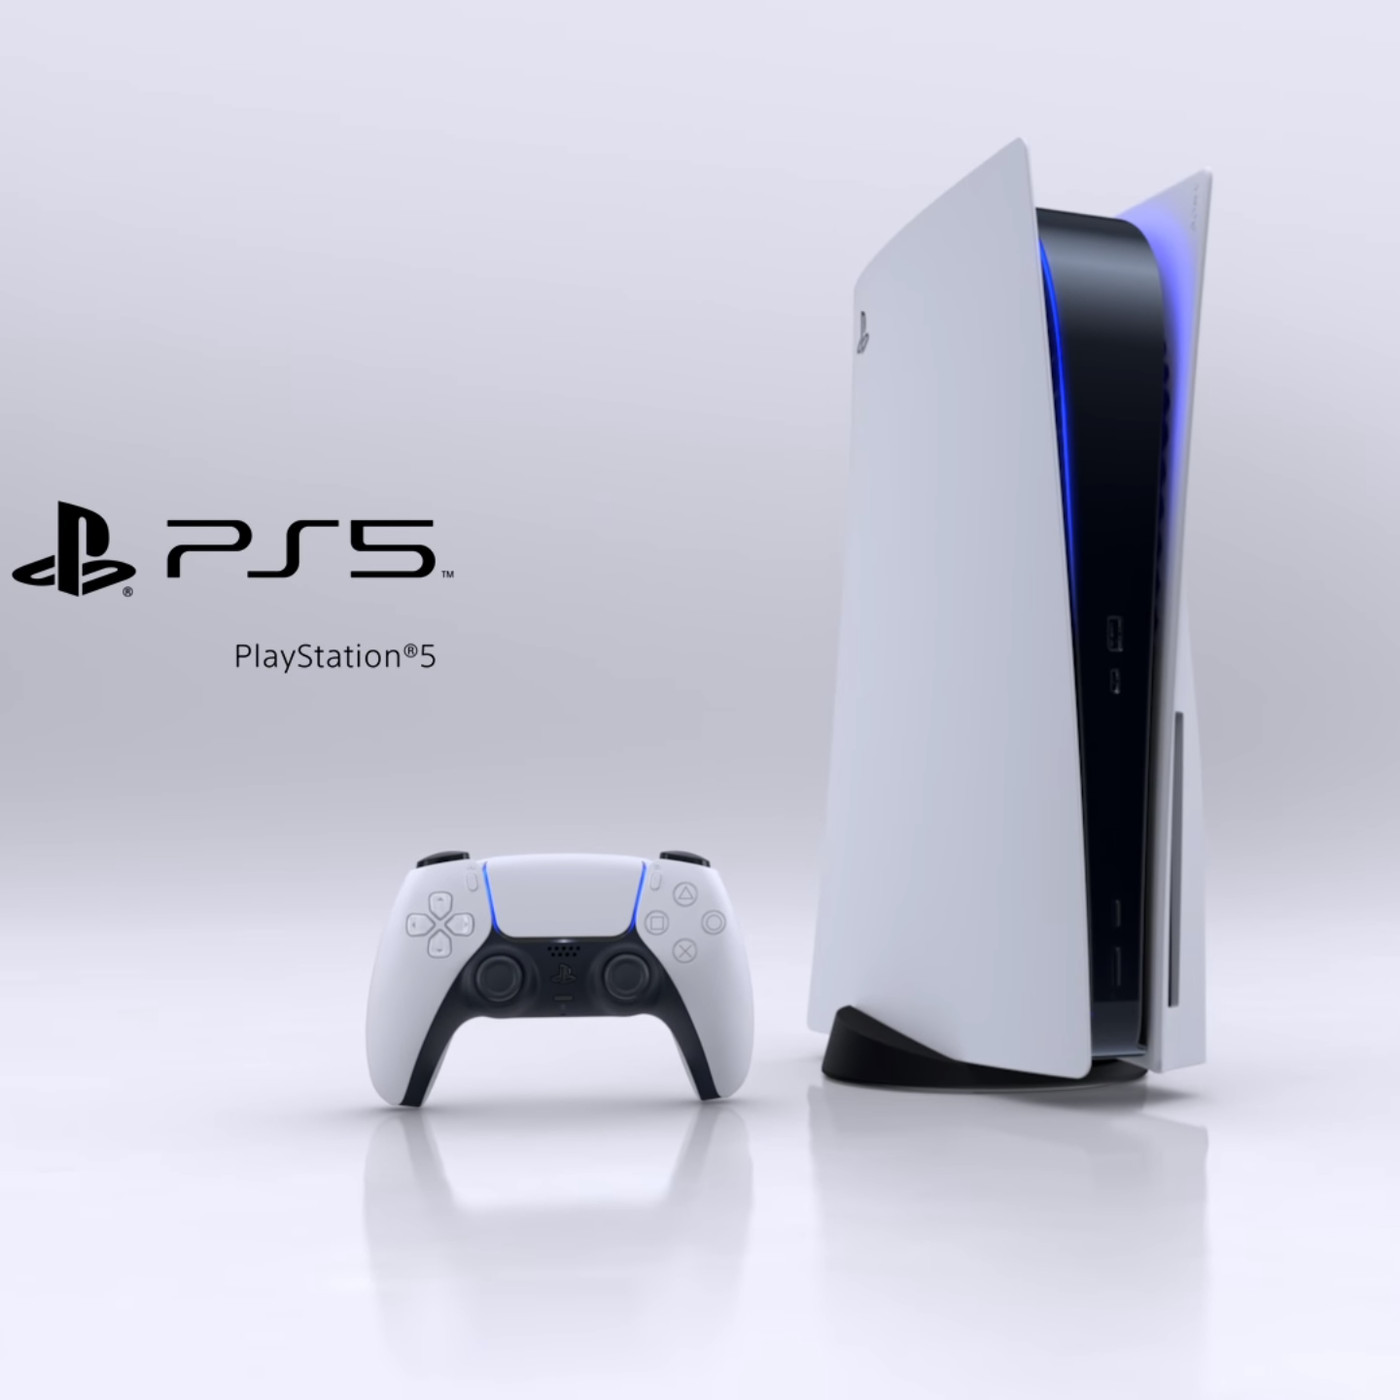 ps5 console (with cd slot)